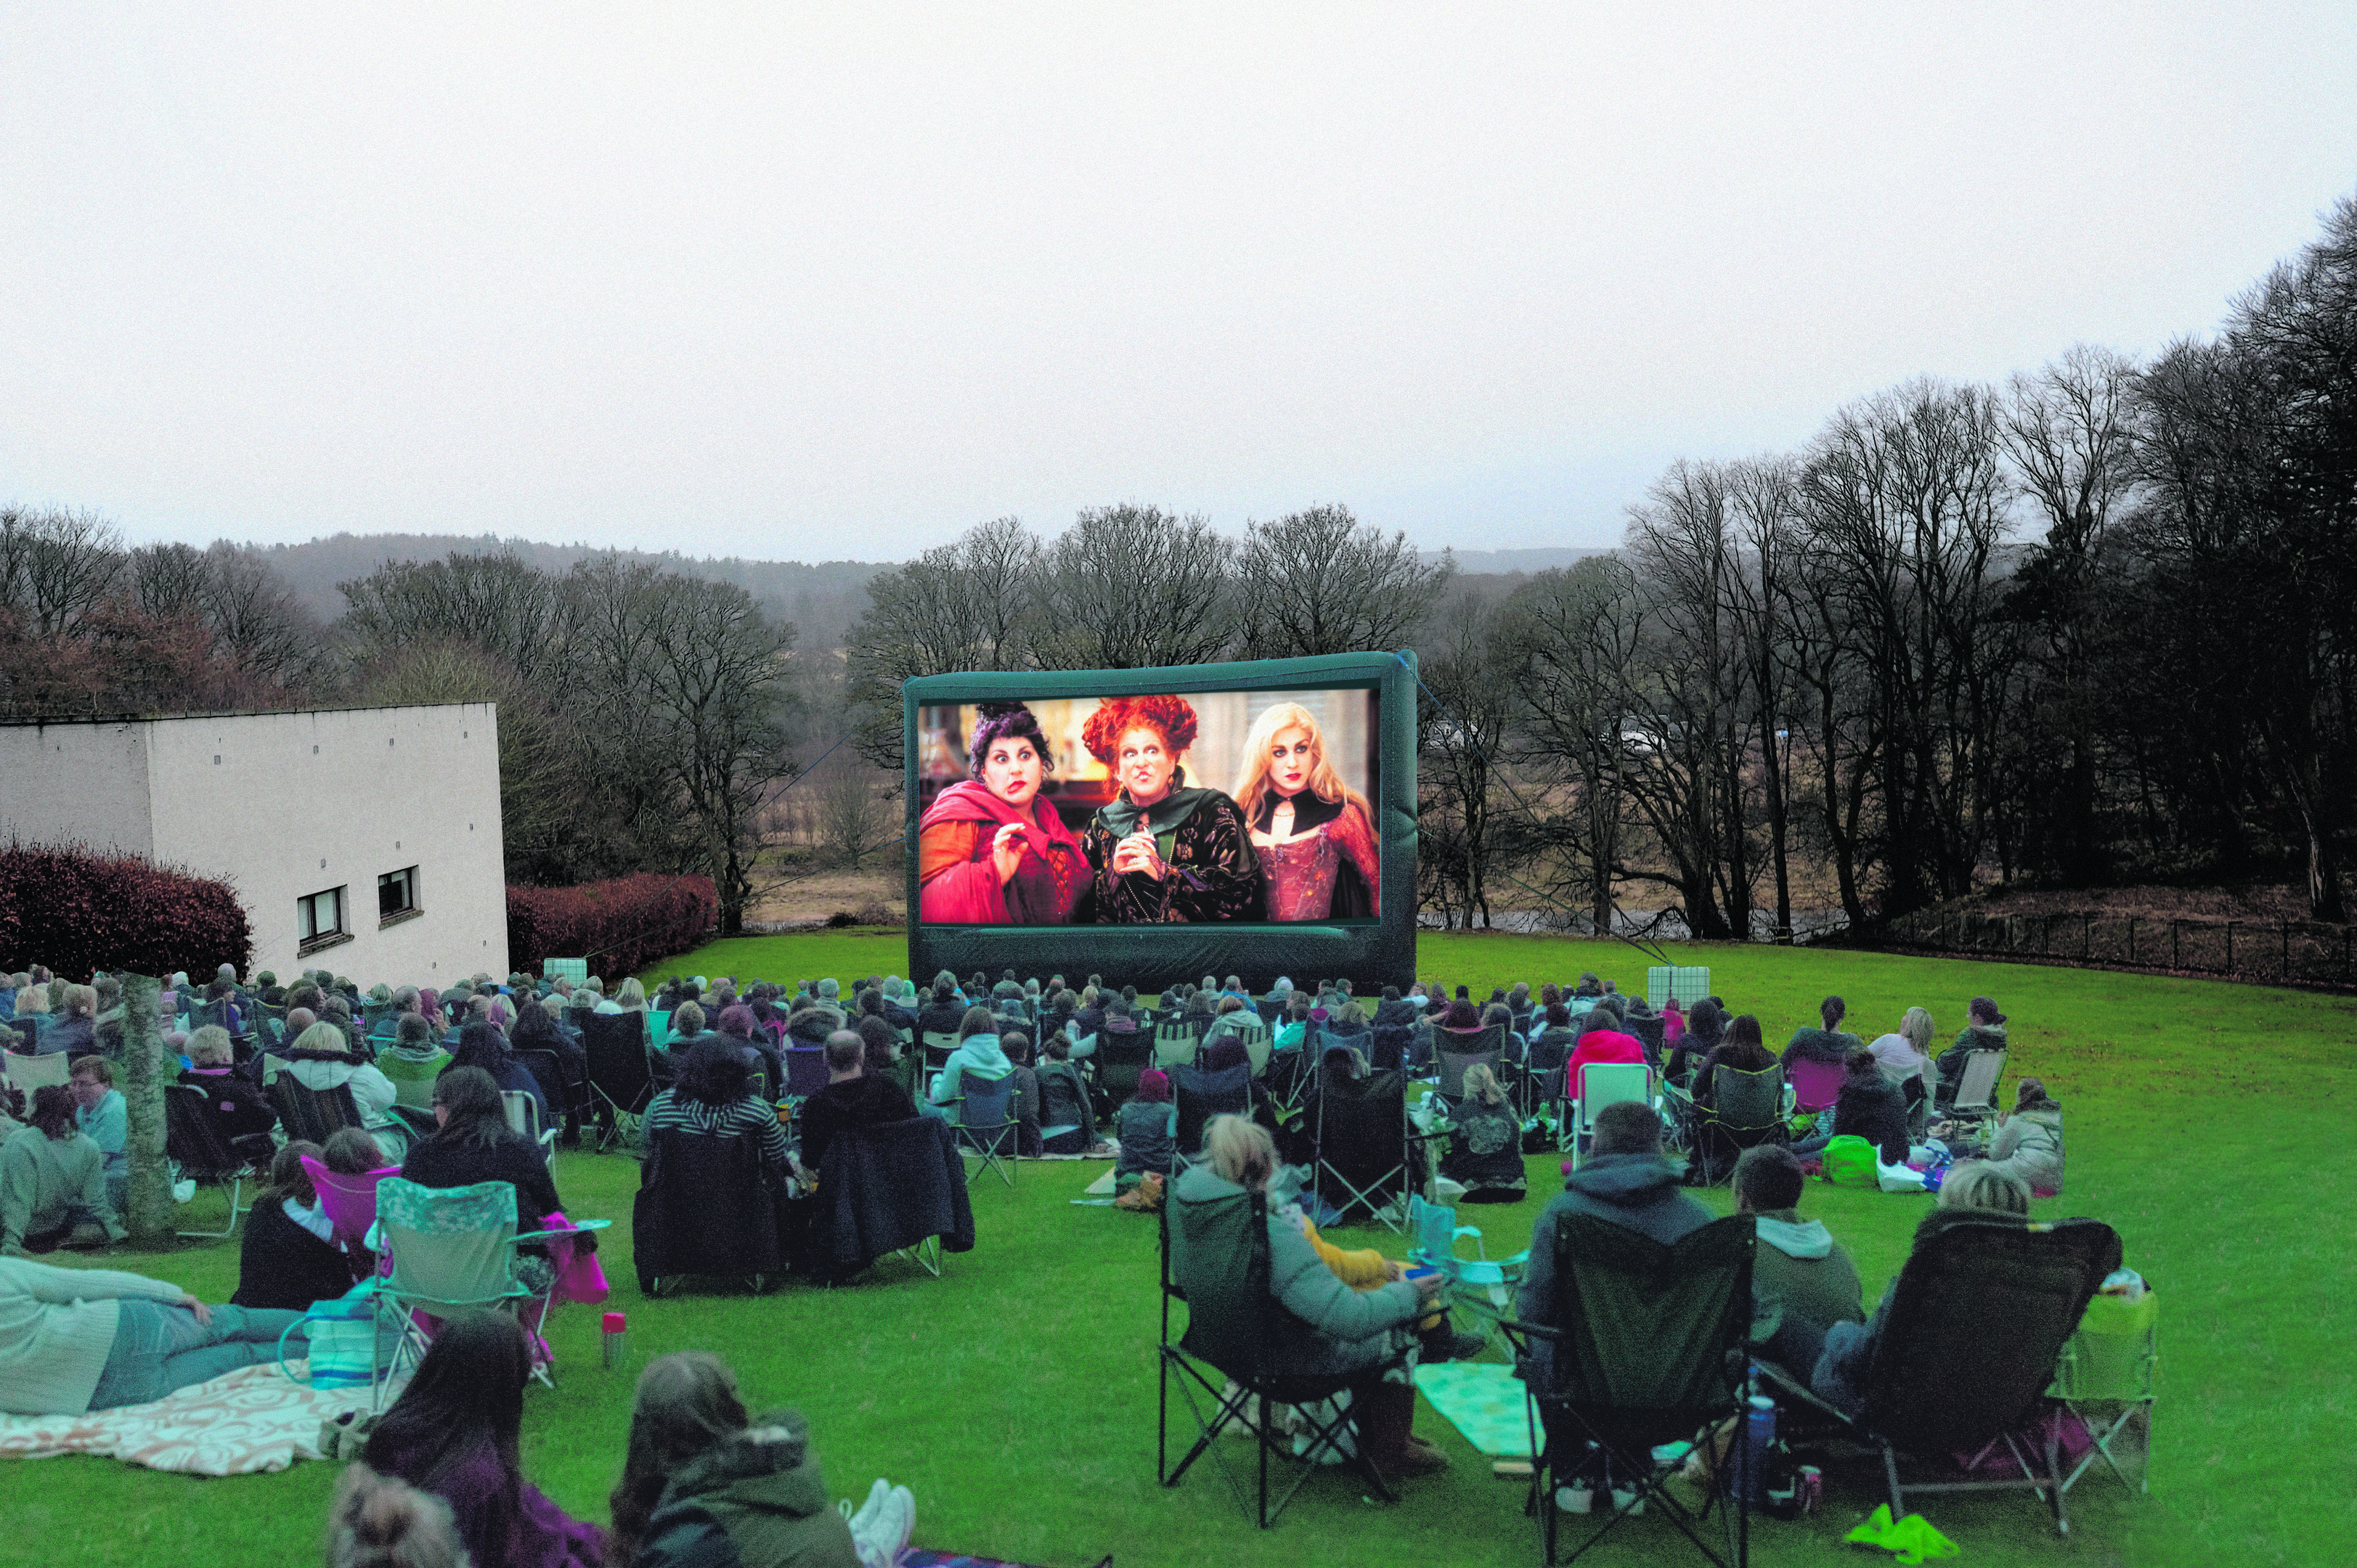 This is how the Robert Gordon University campus could look when the outdoor cinema event takes place next month.